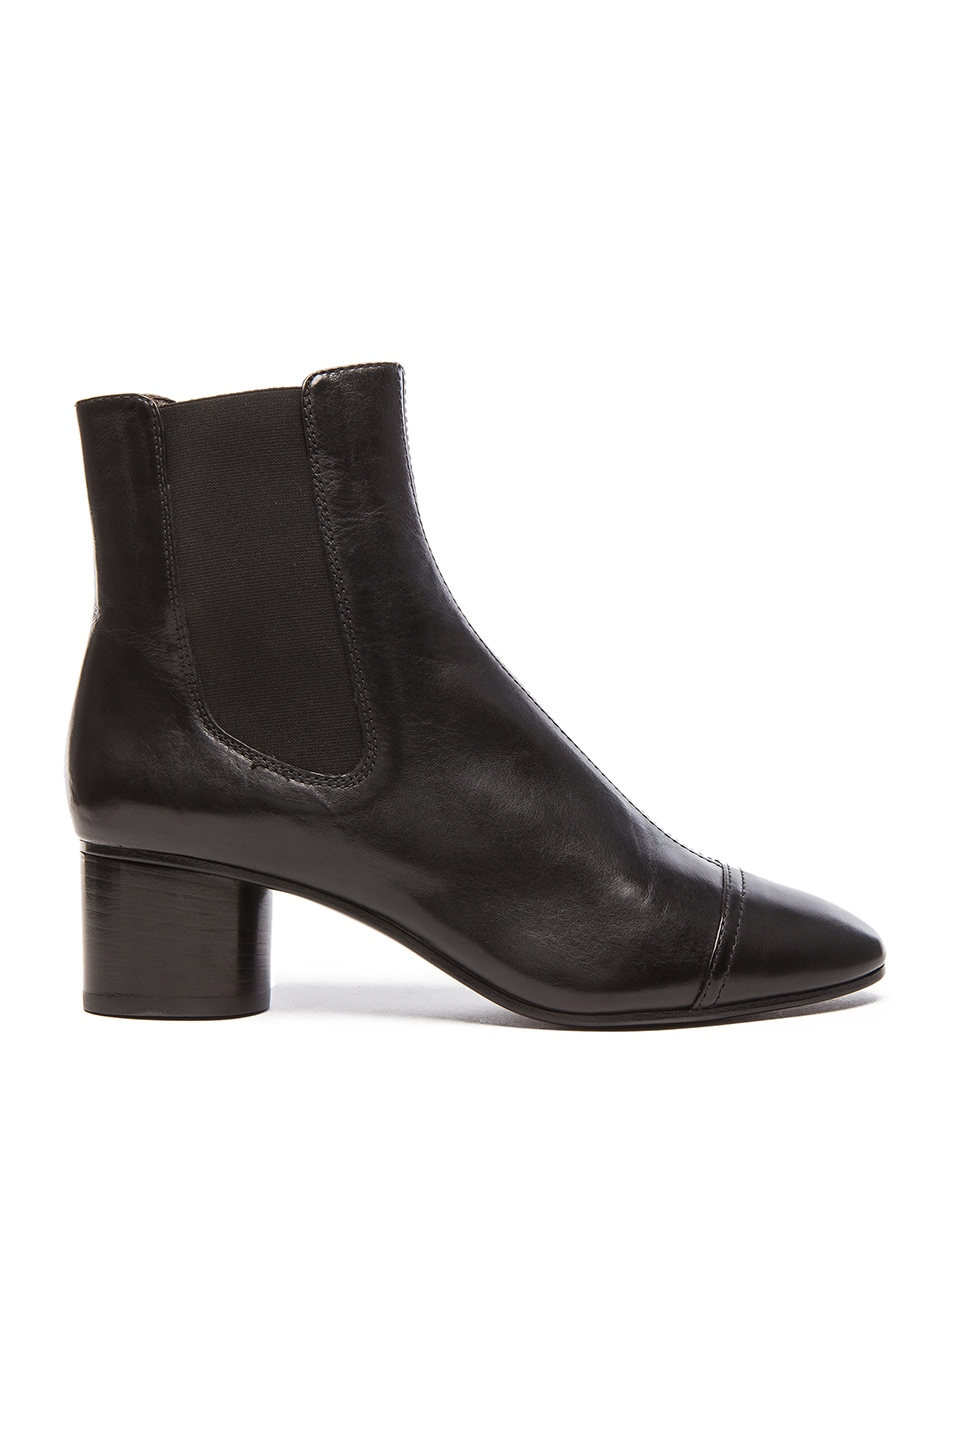 Image 1 of Isabel Marant Danae Chelsea Leather Boots in Black